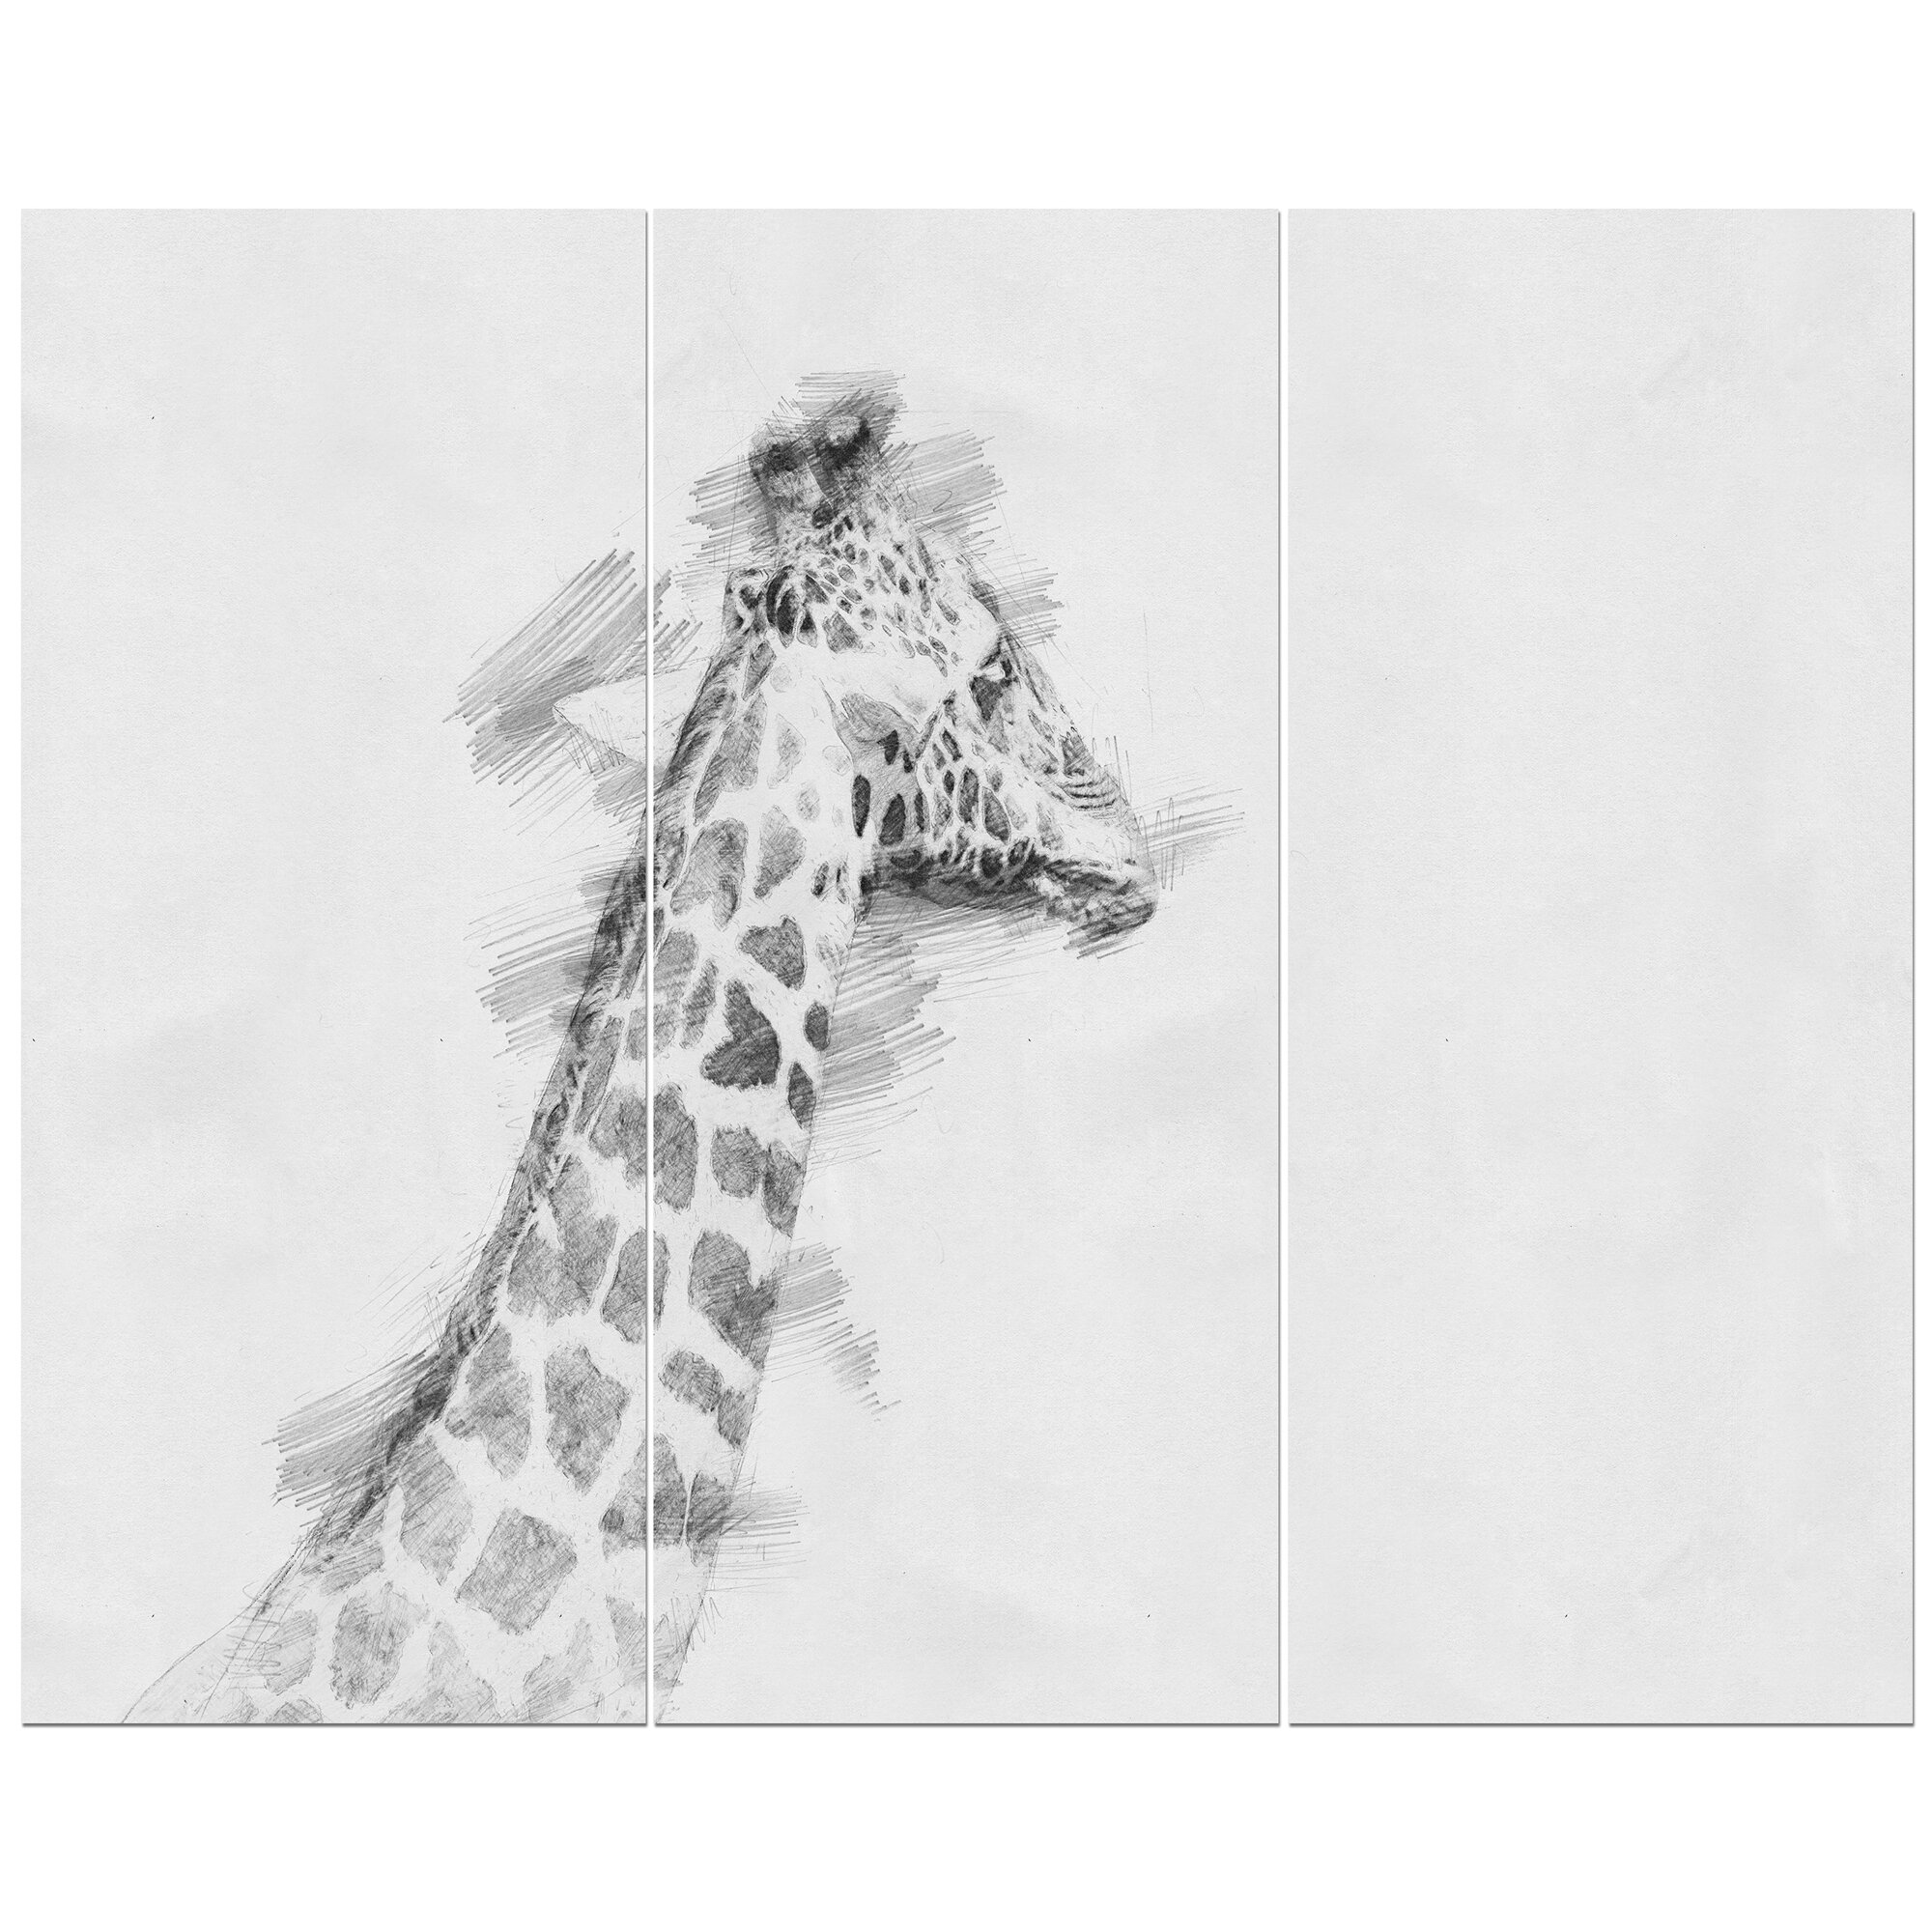 Giraffe in black and white pencil sketch drawing print multi piece image on wrapped canvas